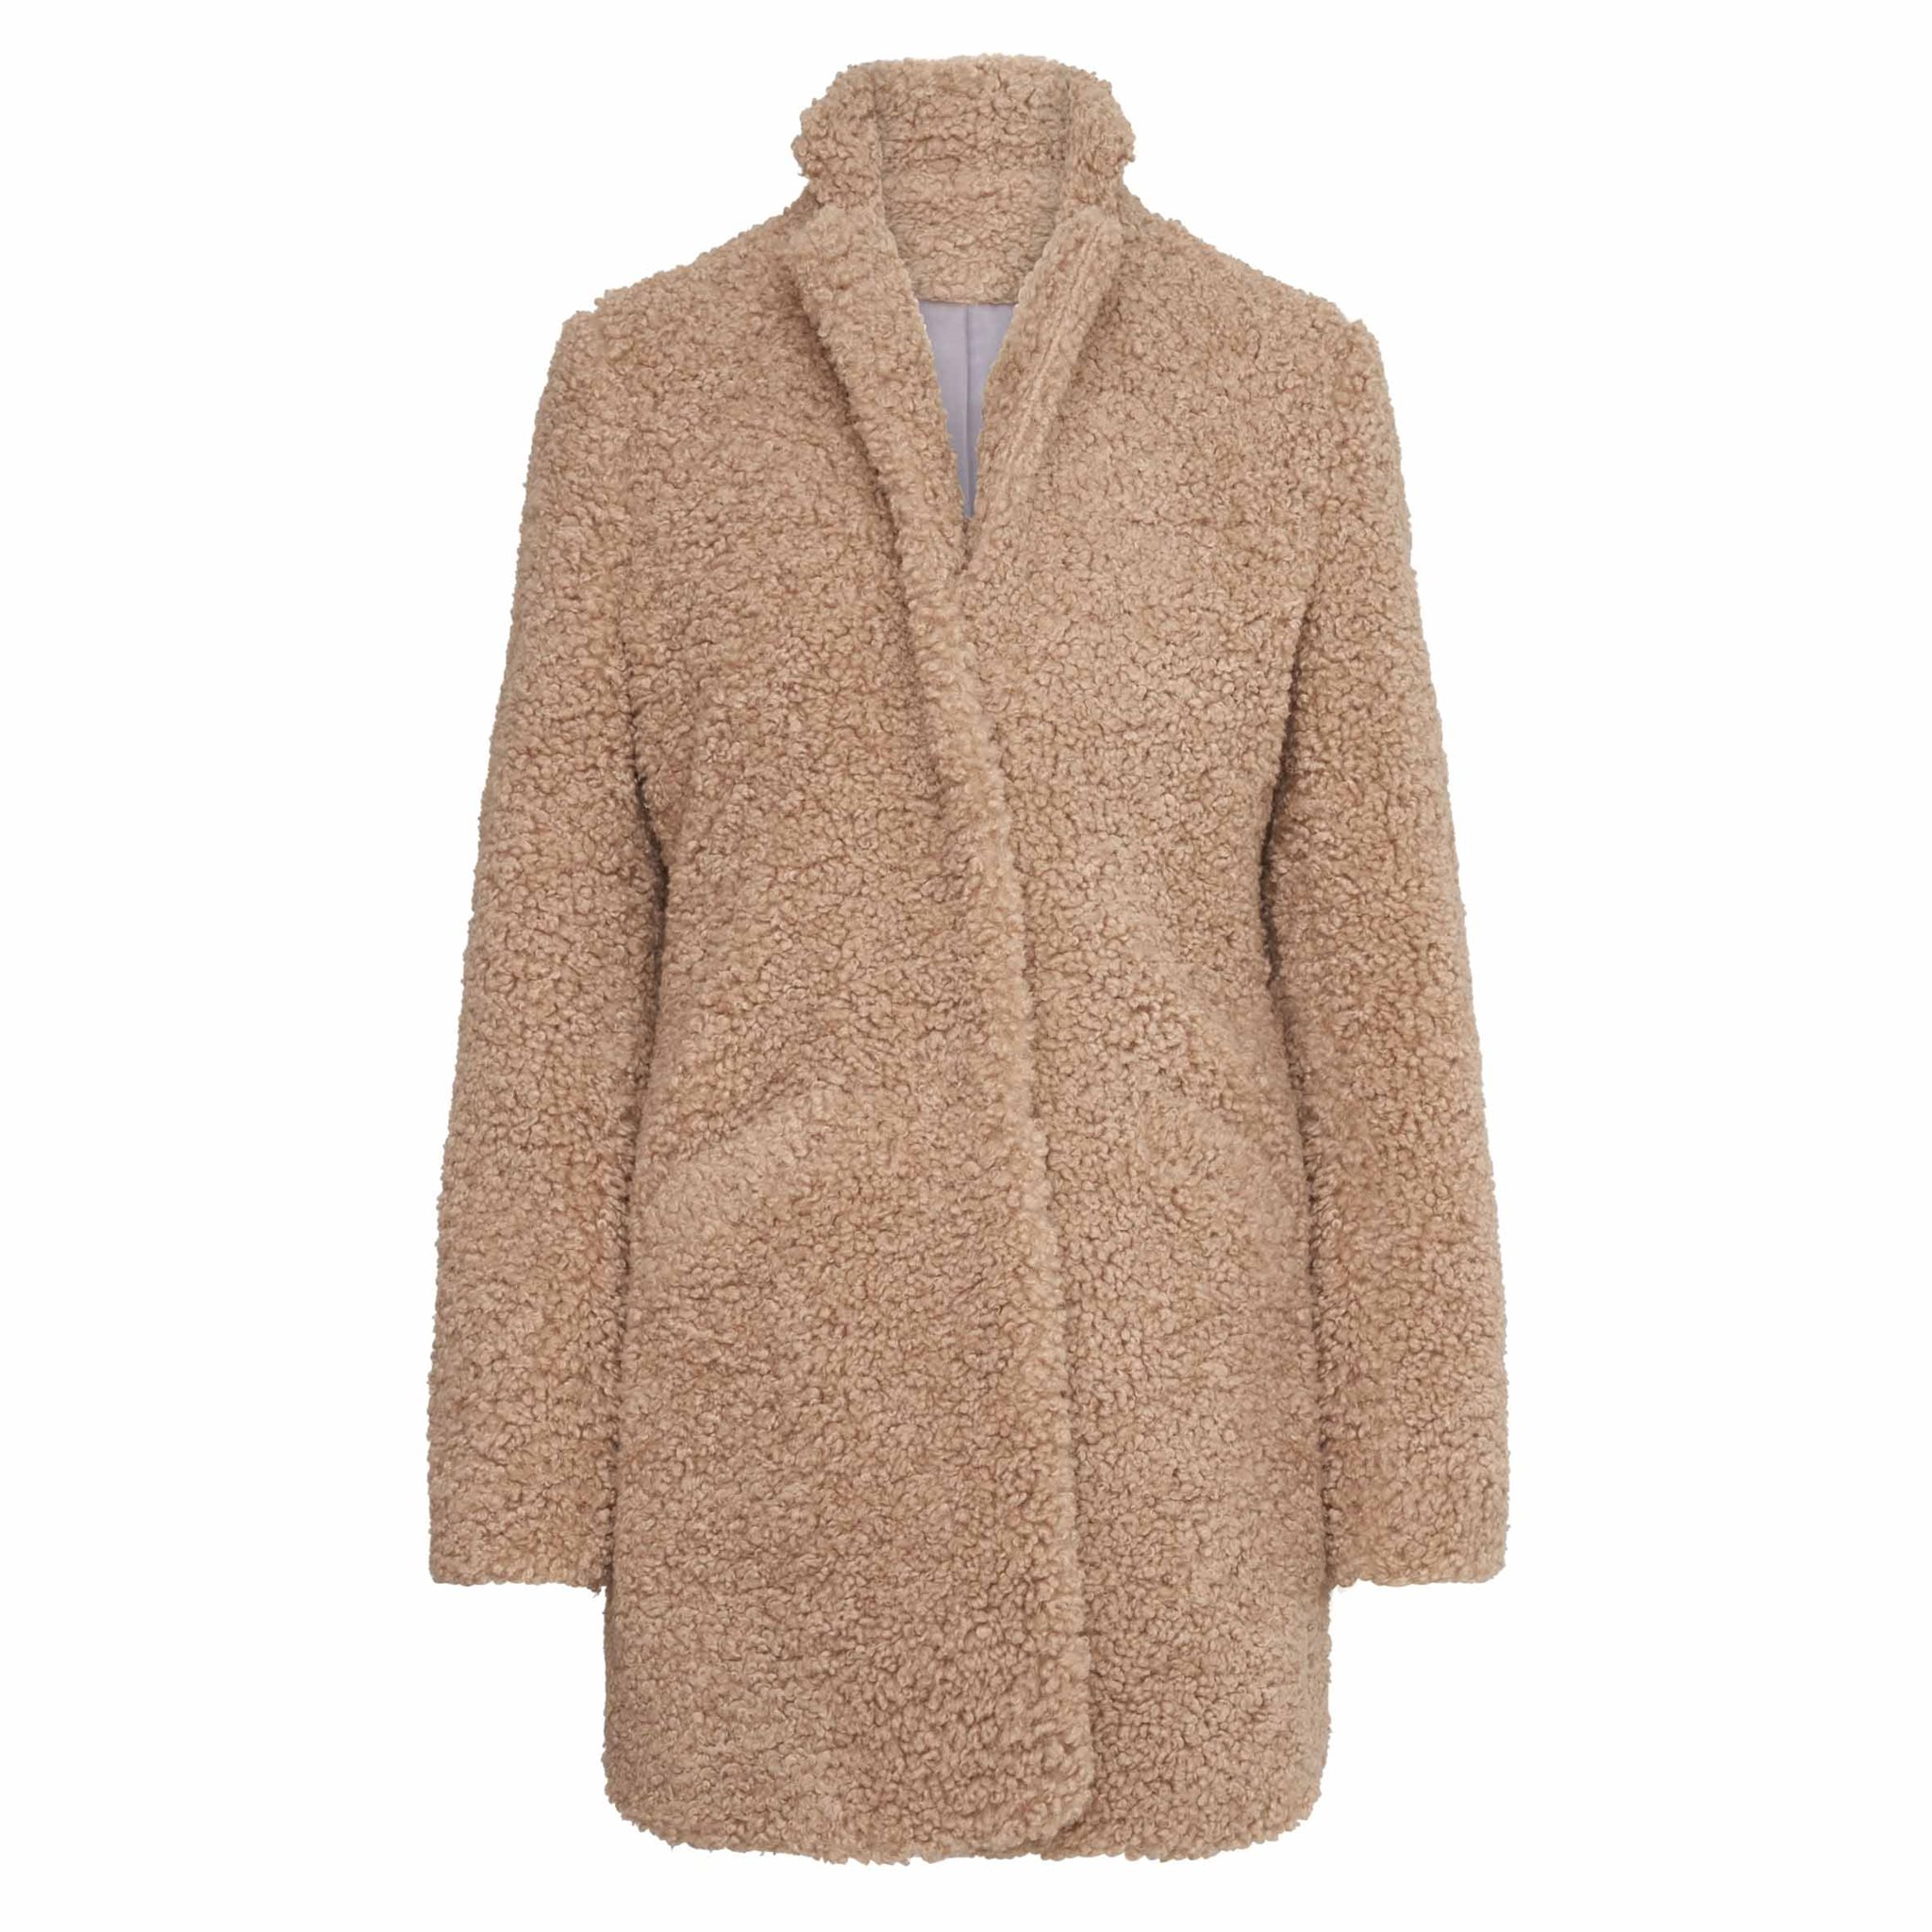 Teddy coat HVS-Madia HV SOCIETY